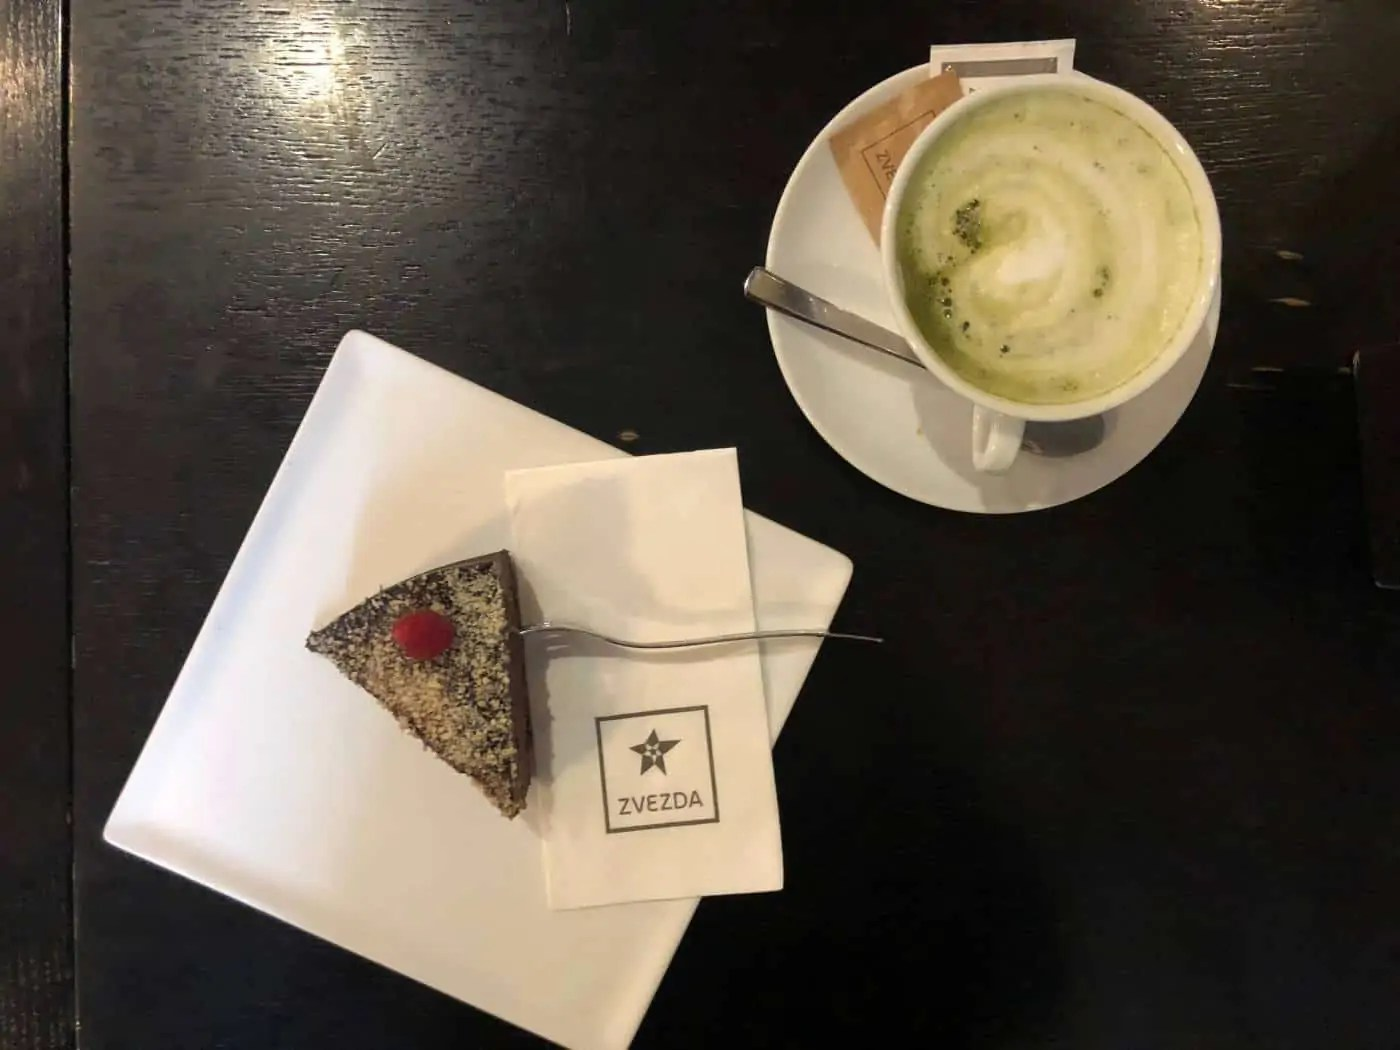 A Matcha Latte and Raw Cake from Zvevda in Ljubljana